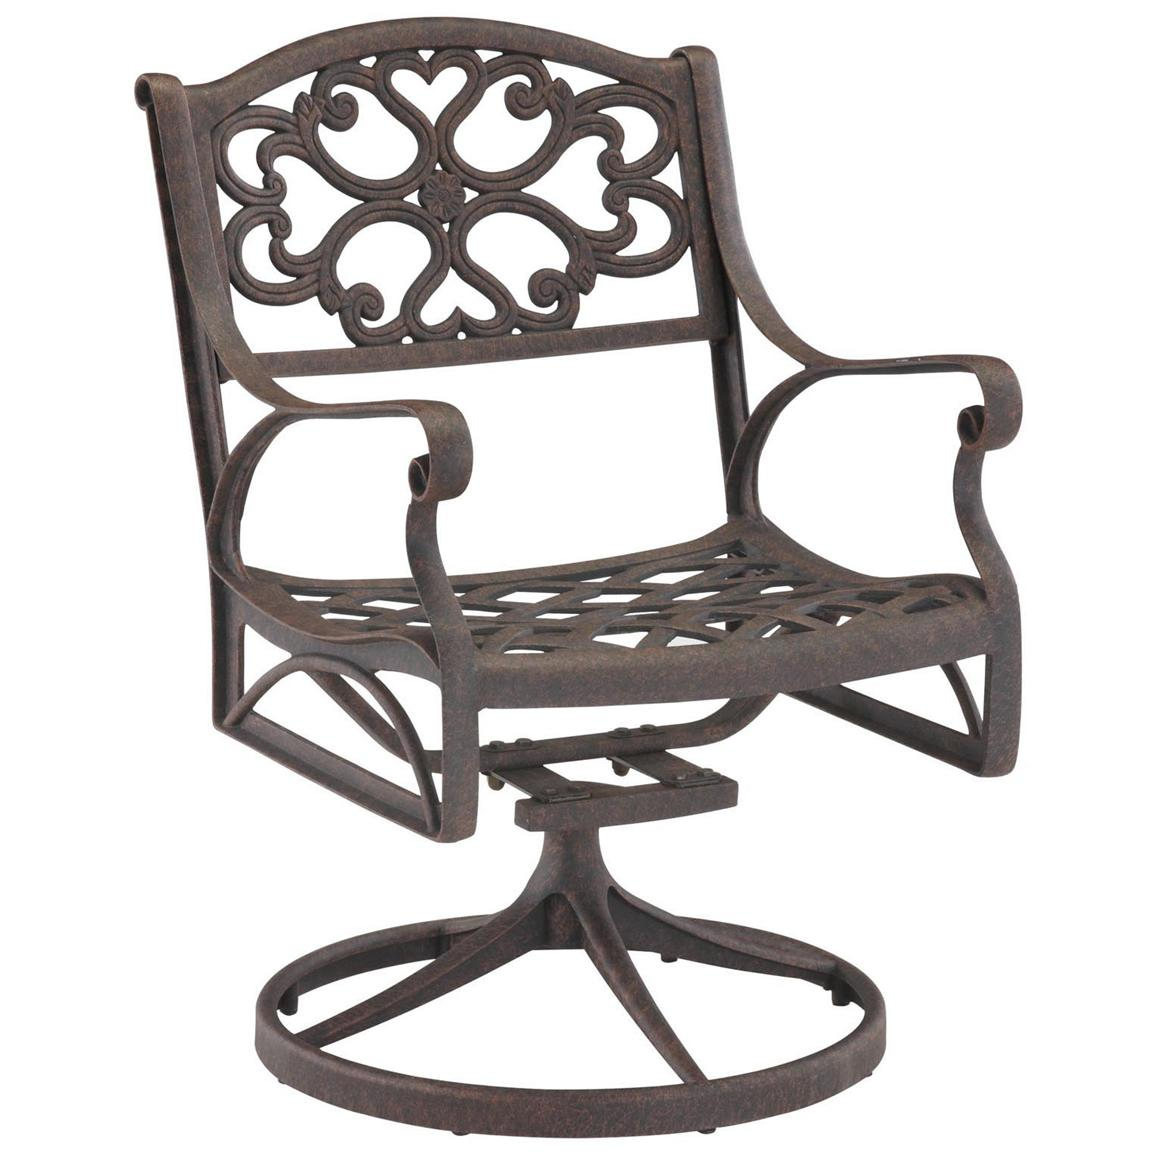 Biscayne Outdoor Swivel Dining Chair, Rustic Brown